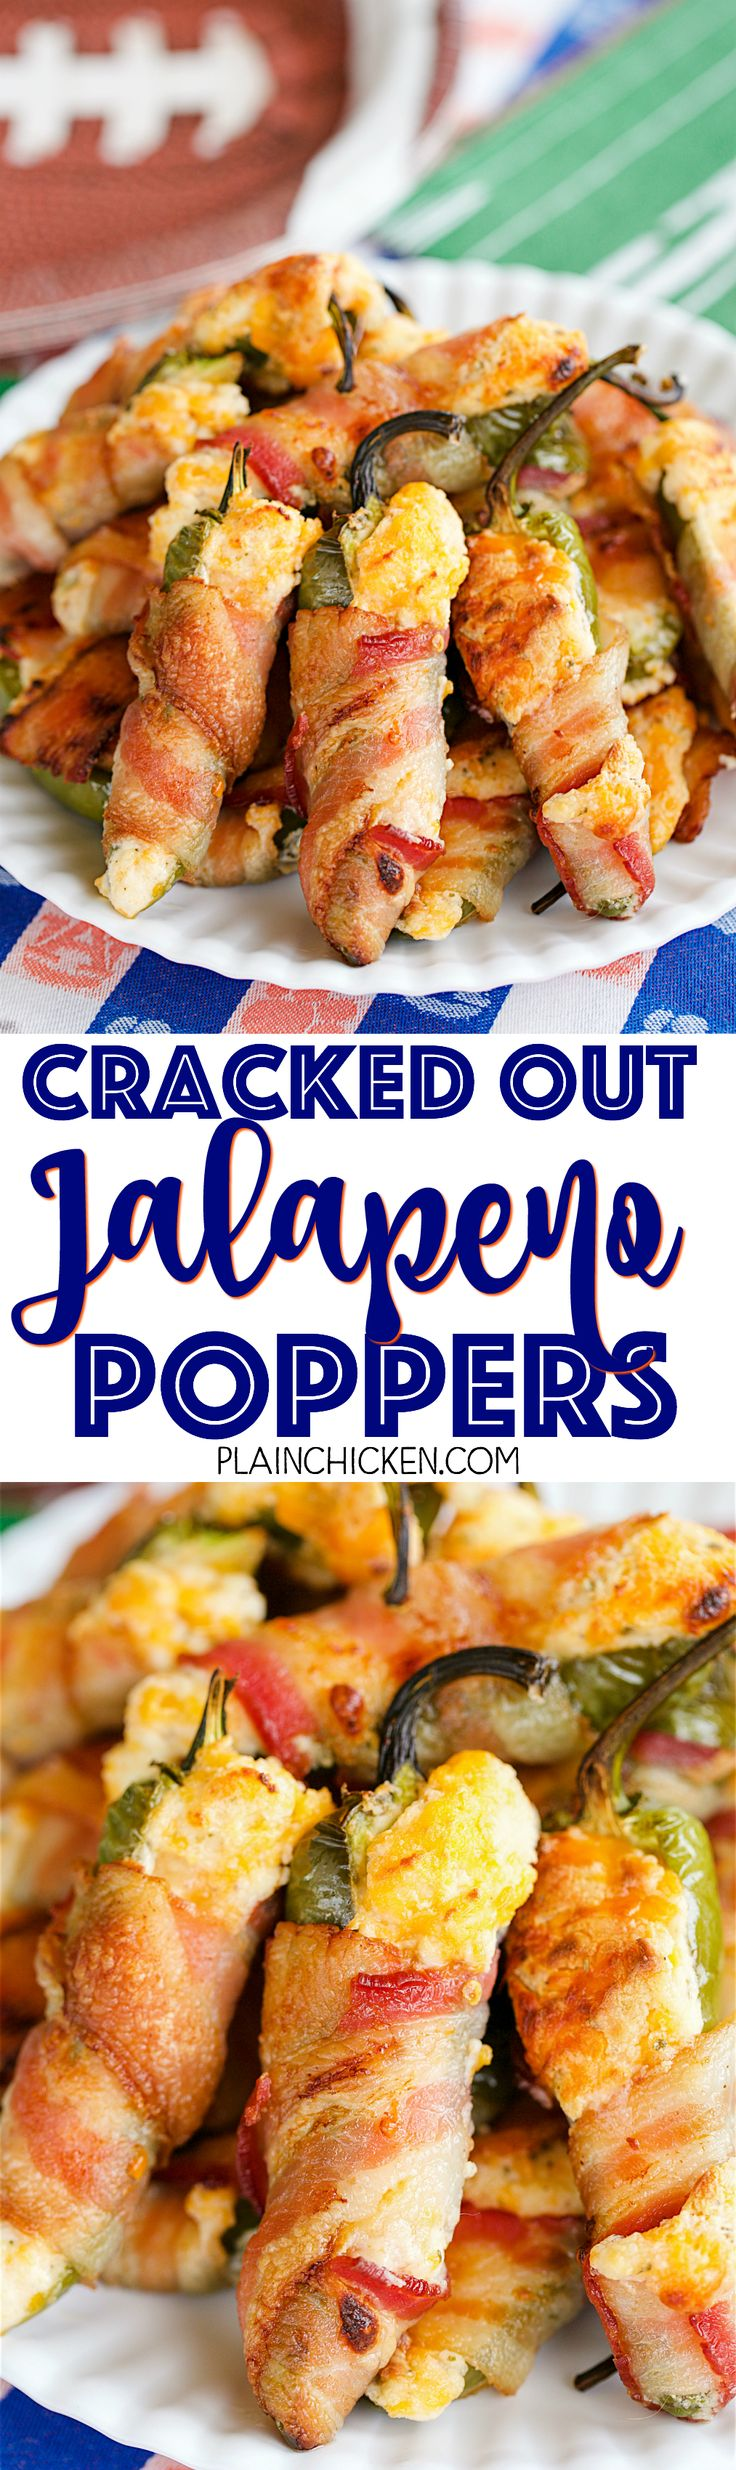 Cracked Out Jalapeño Poppers - jalapeños stuffed with cream cheese, cheddar, and Ranch and wrapped in bacon. These things are CRAZY good! I took them to a party and they were gone in a flash! Can make ahead of time and bake when ready. Tastes great warm and at room temperature.